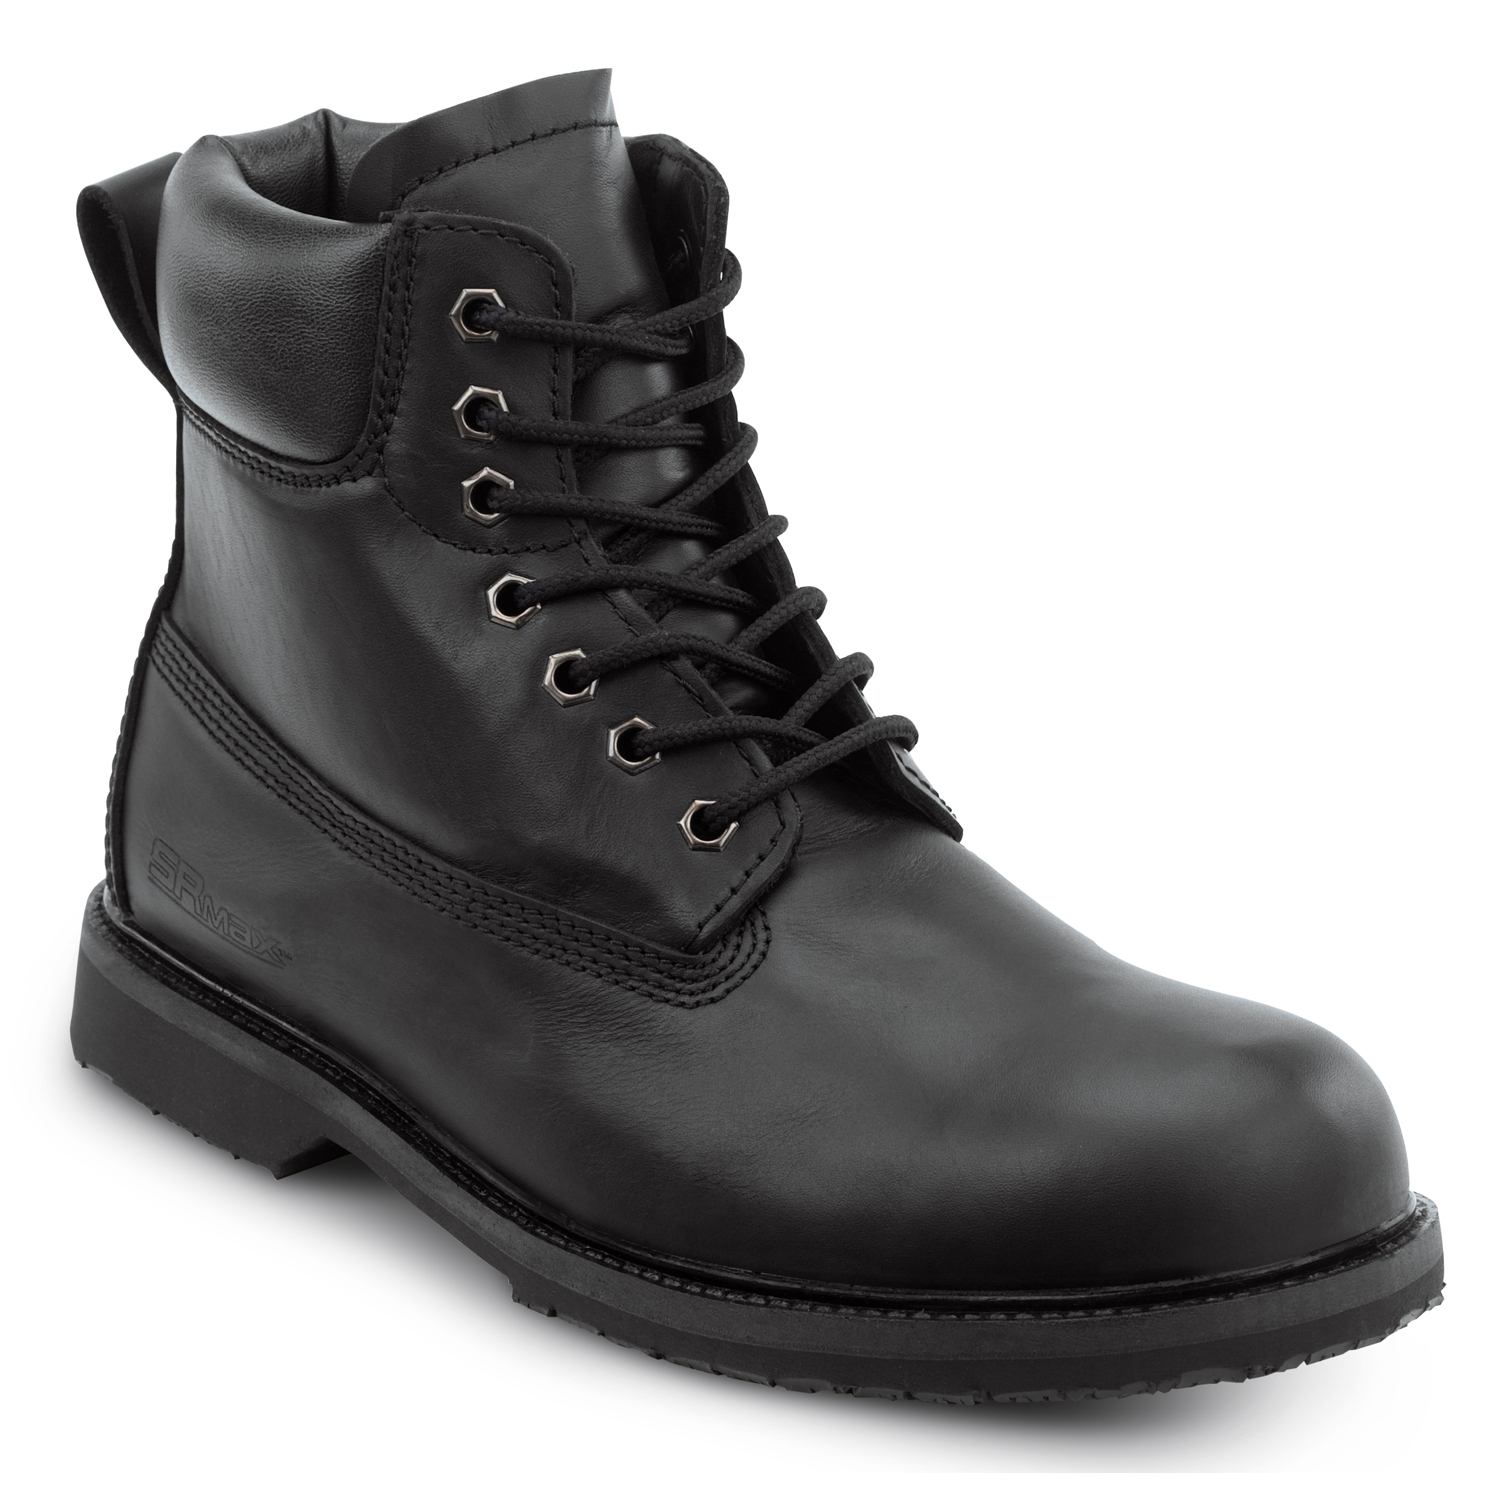 Black Work Boots Men